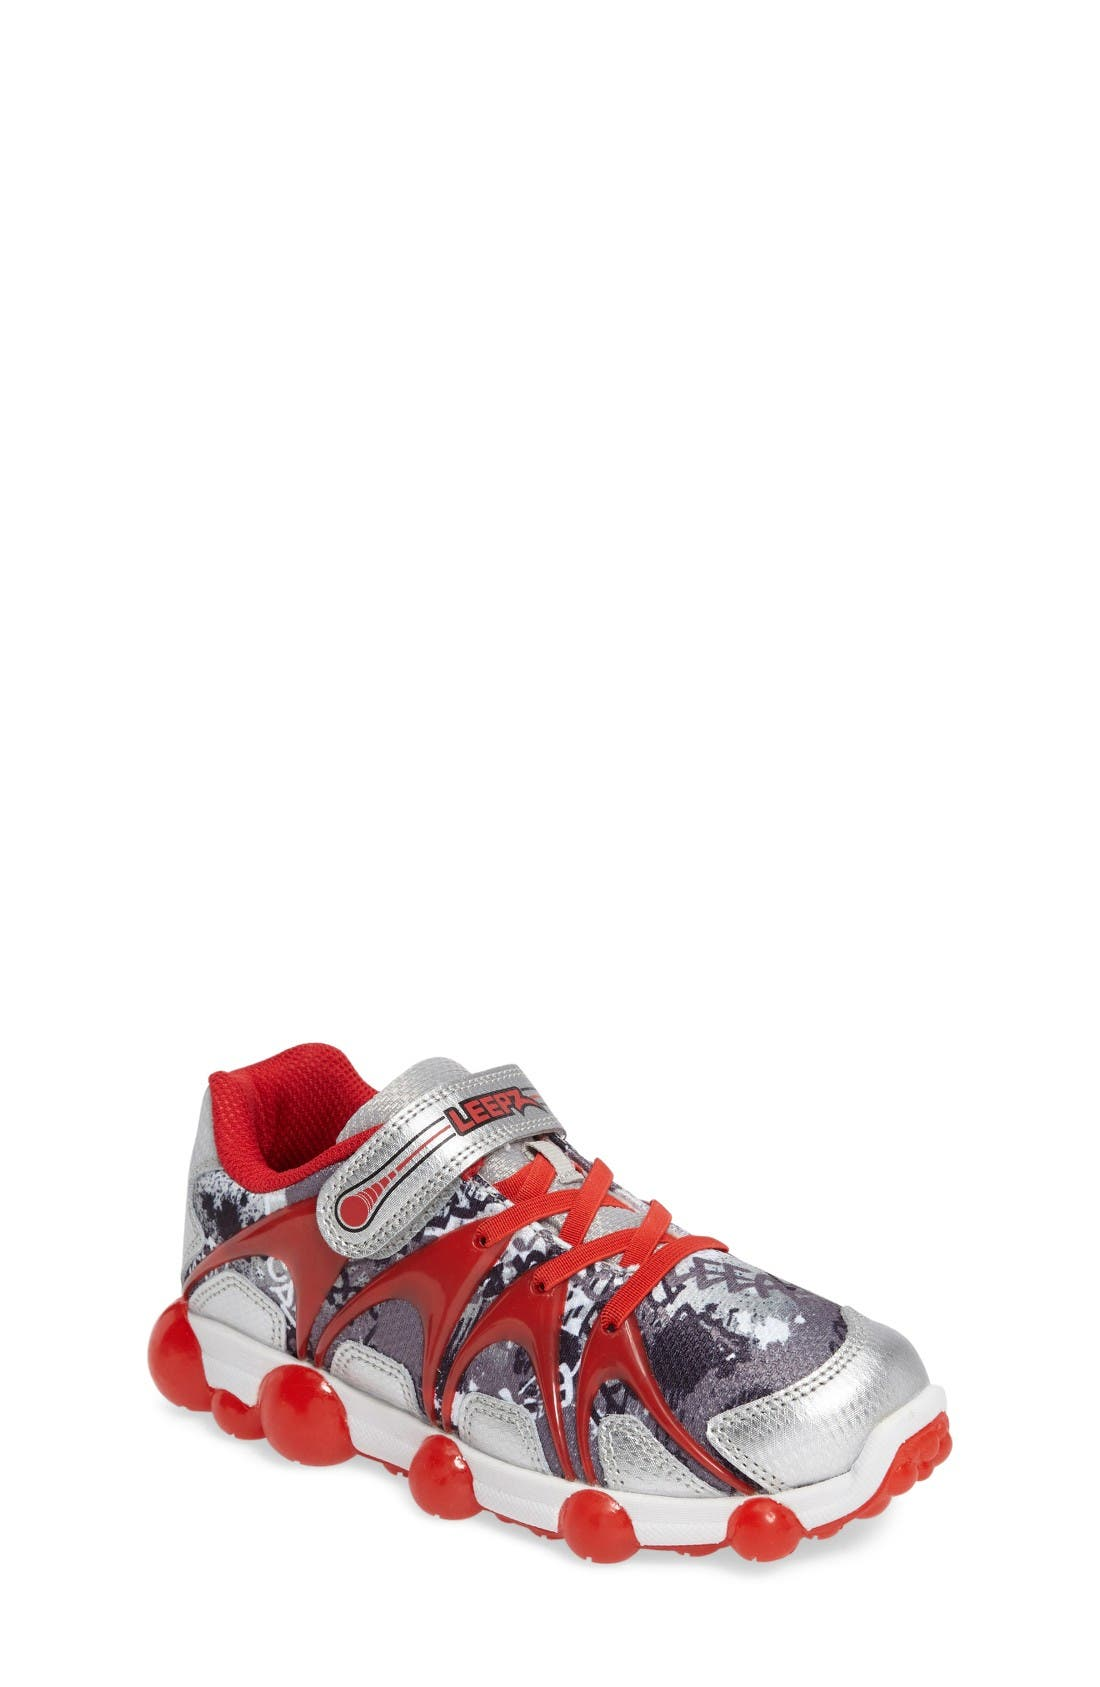 'Leepz' Light-Up Sneaker,                         Main,                         color, Red/ Silver